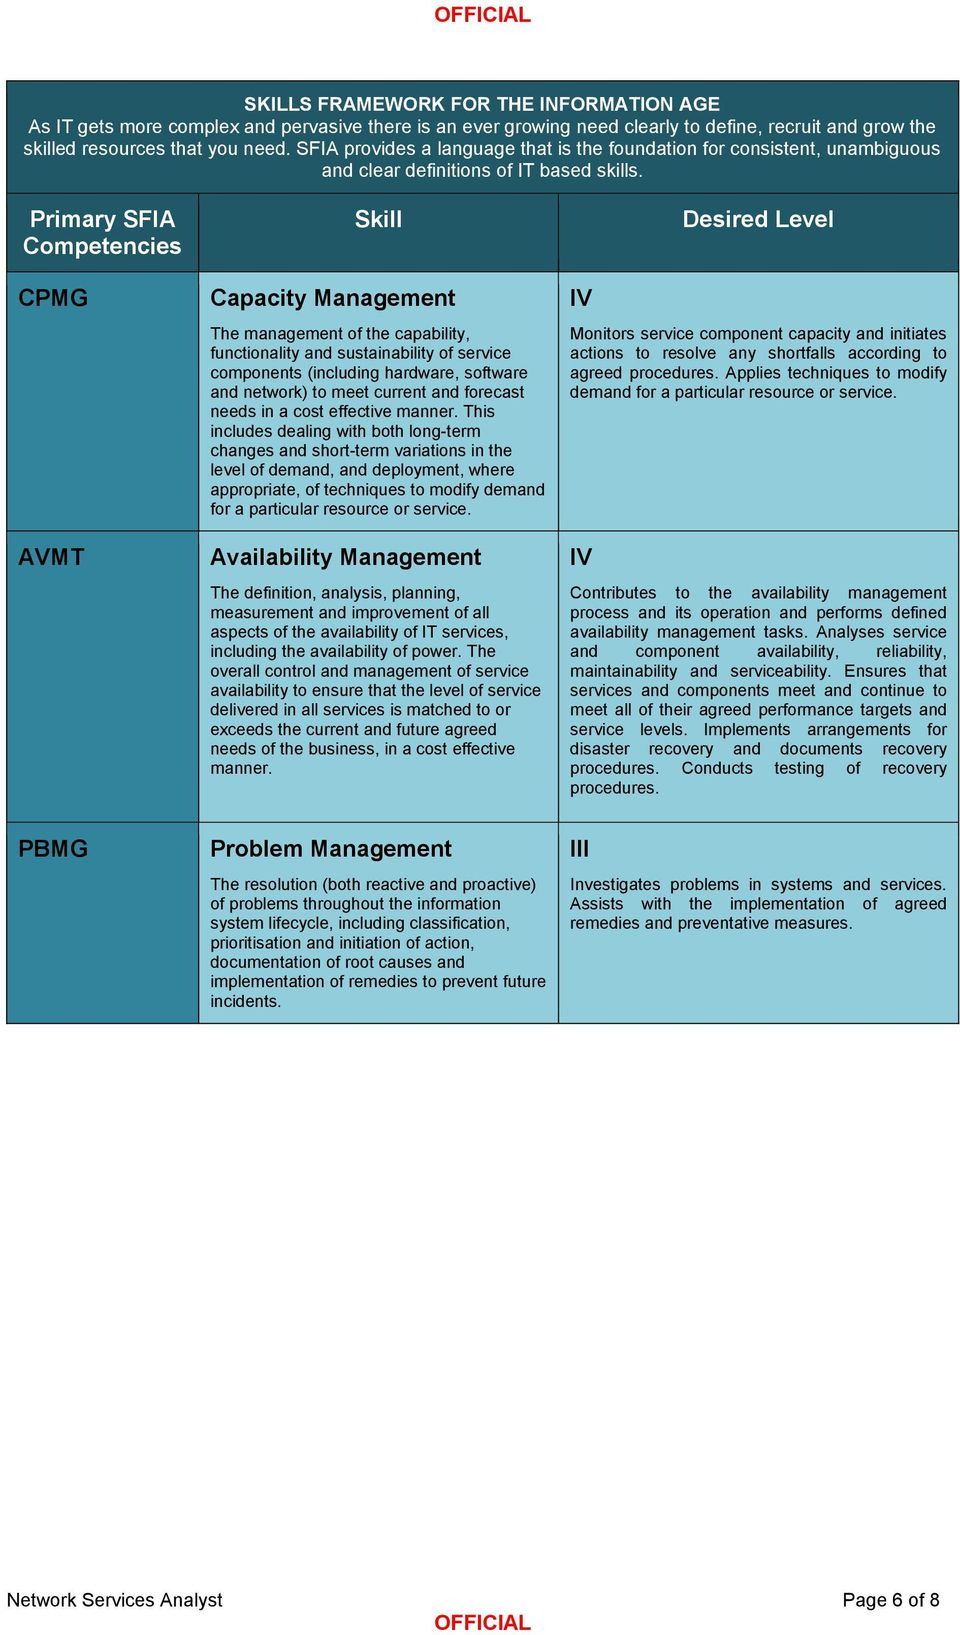 Primary SFIA Cmpetencies CPMG AVMT Skill Capacity Management The management f the capability, functinality and sustainability f service cmpnents (including hardware, sftware and netwrk) t meet